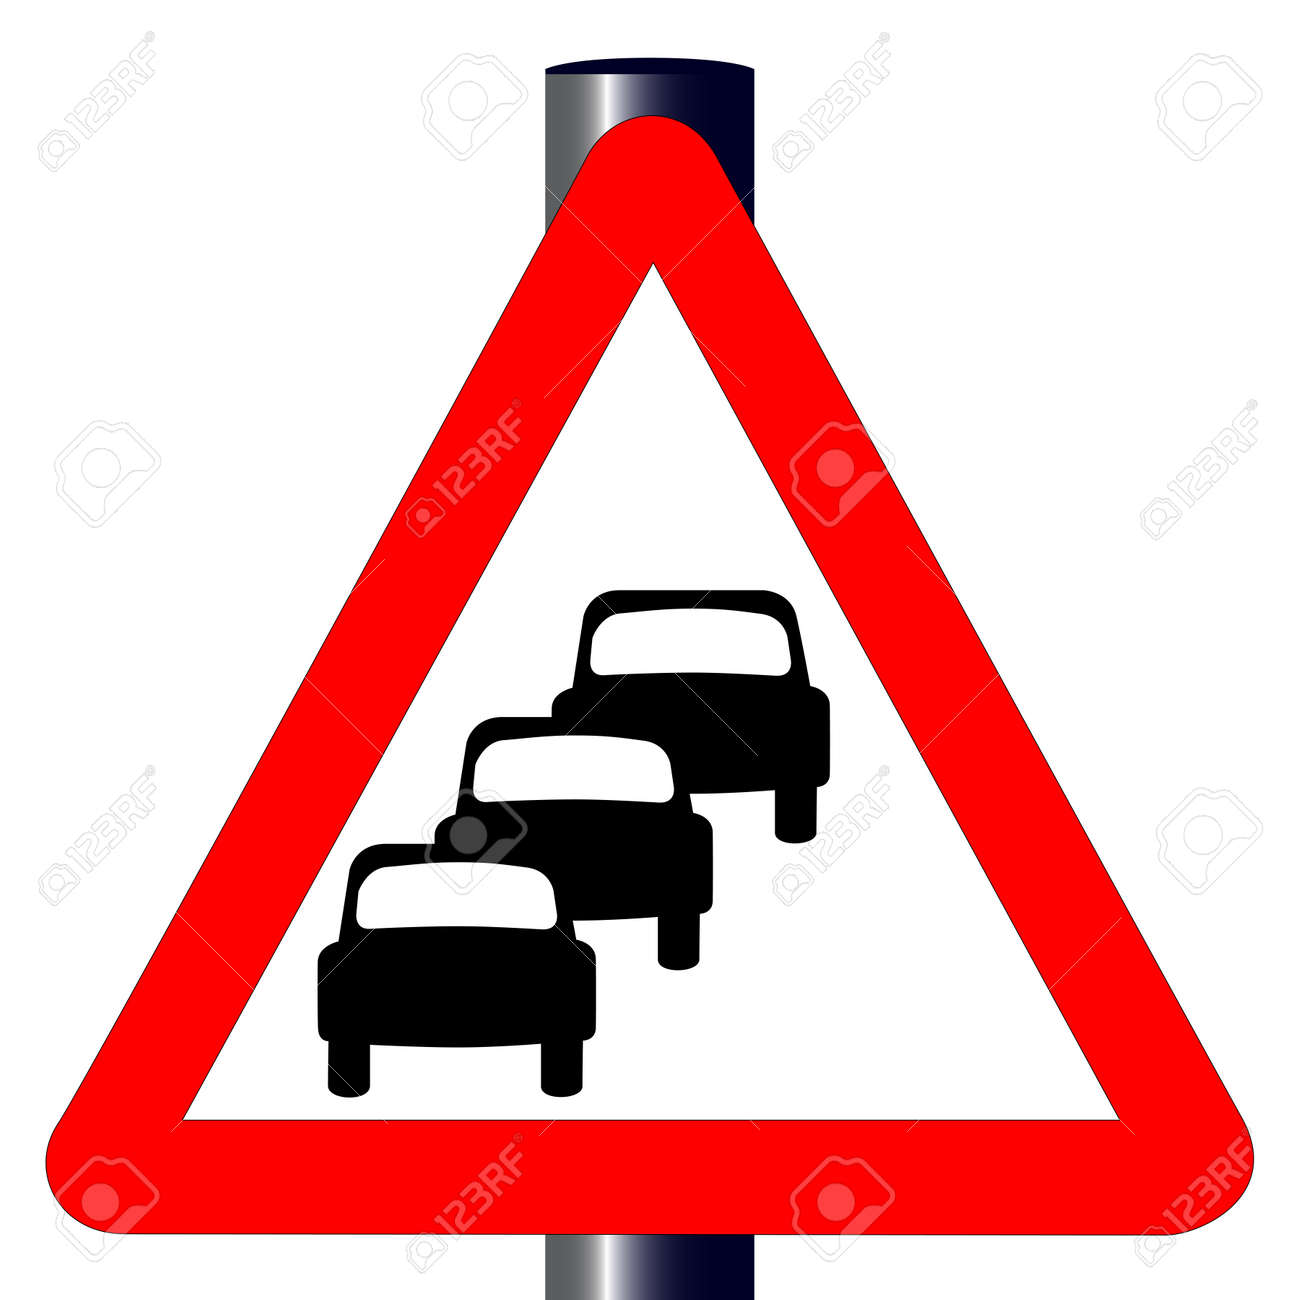 The traditional  QUEUING  triangle, traffic sign isolated on a white background Stock Vector - 24250176